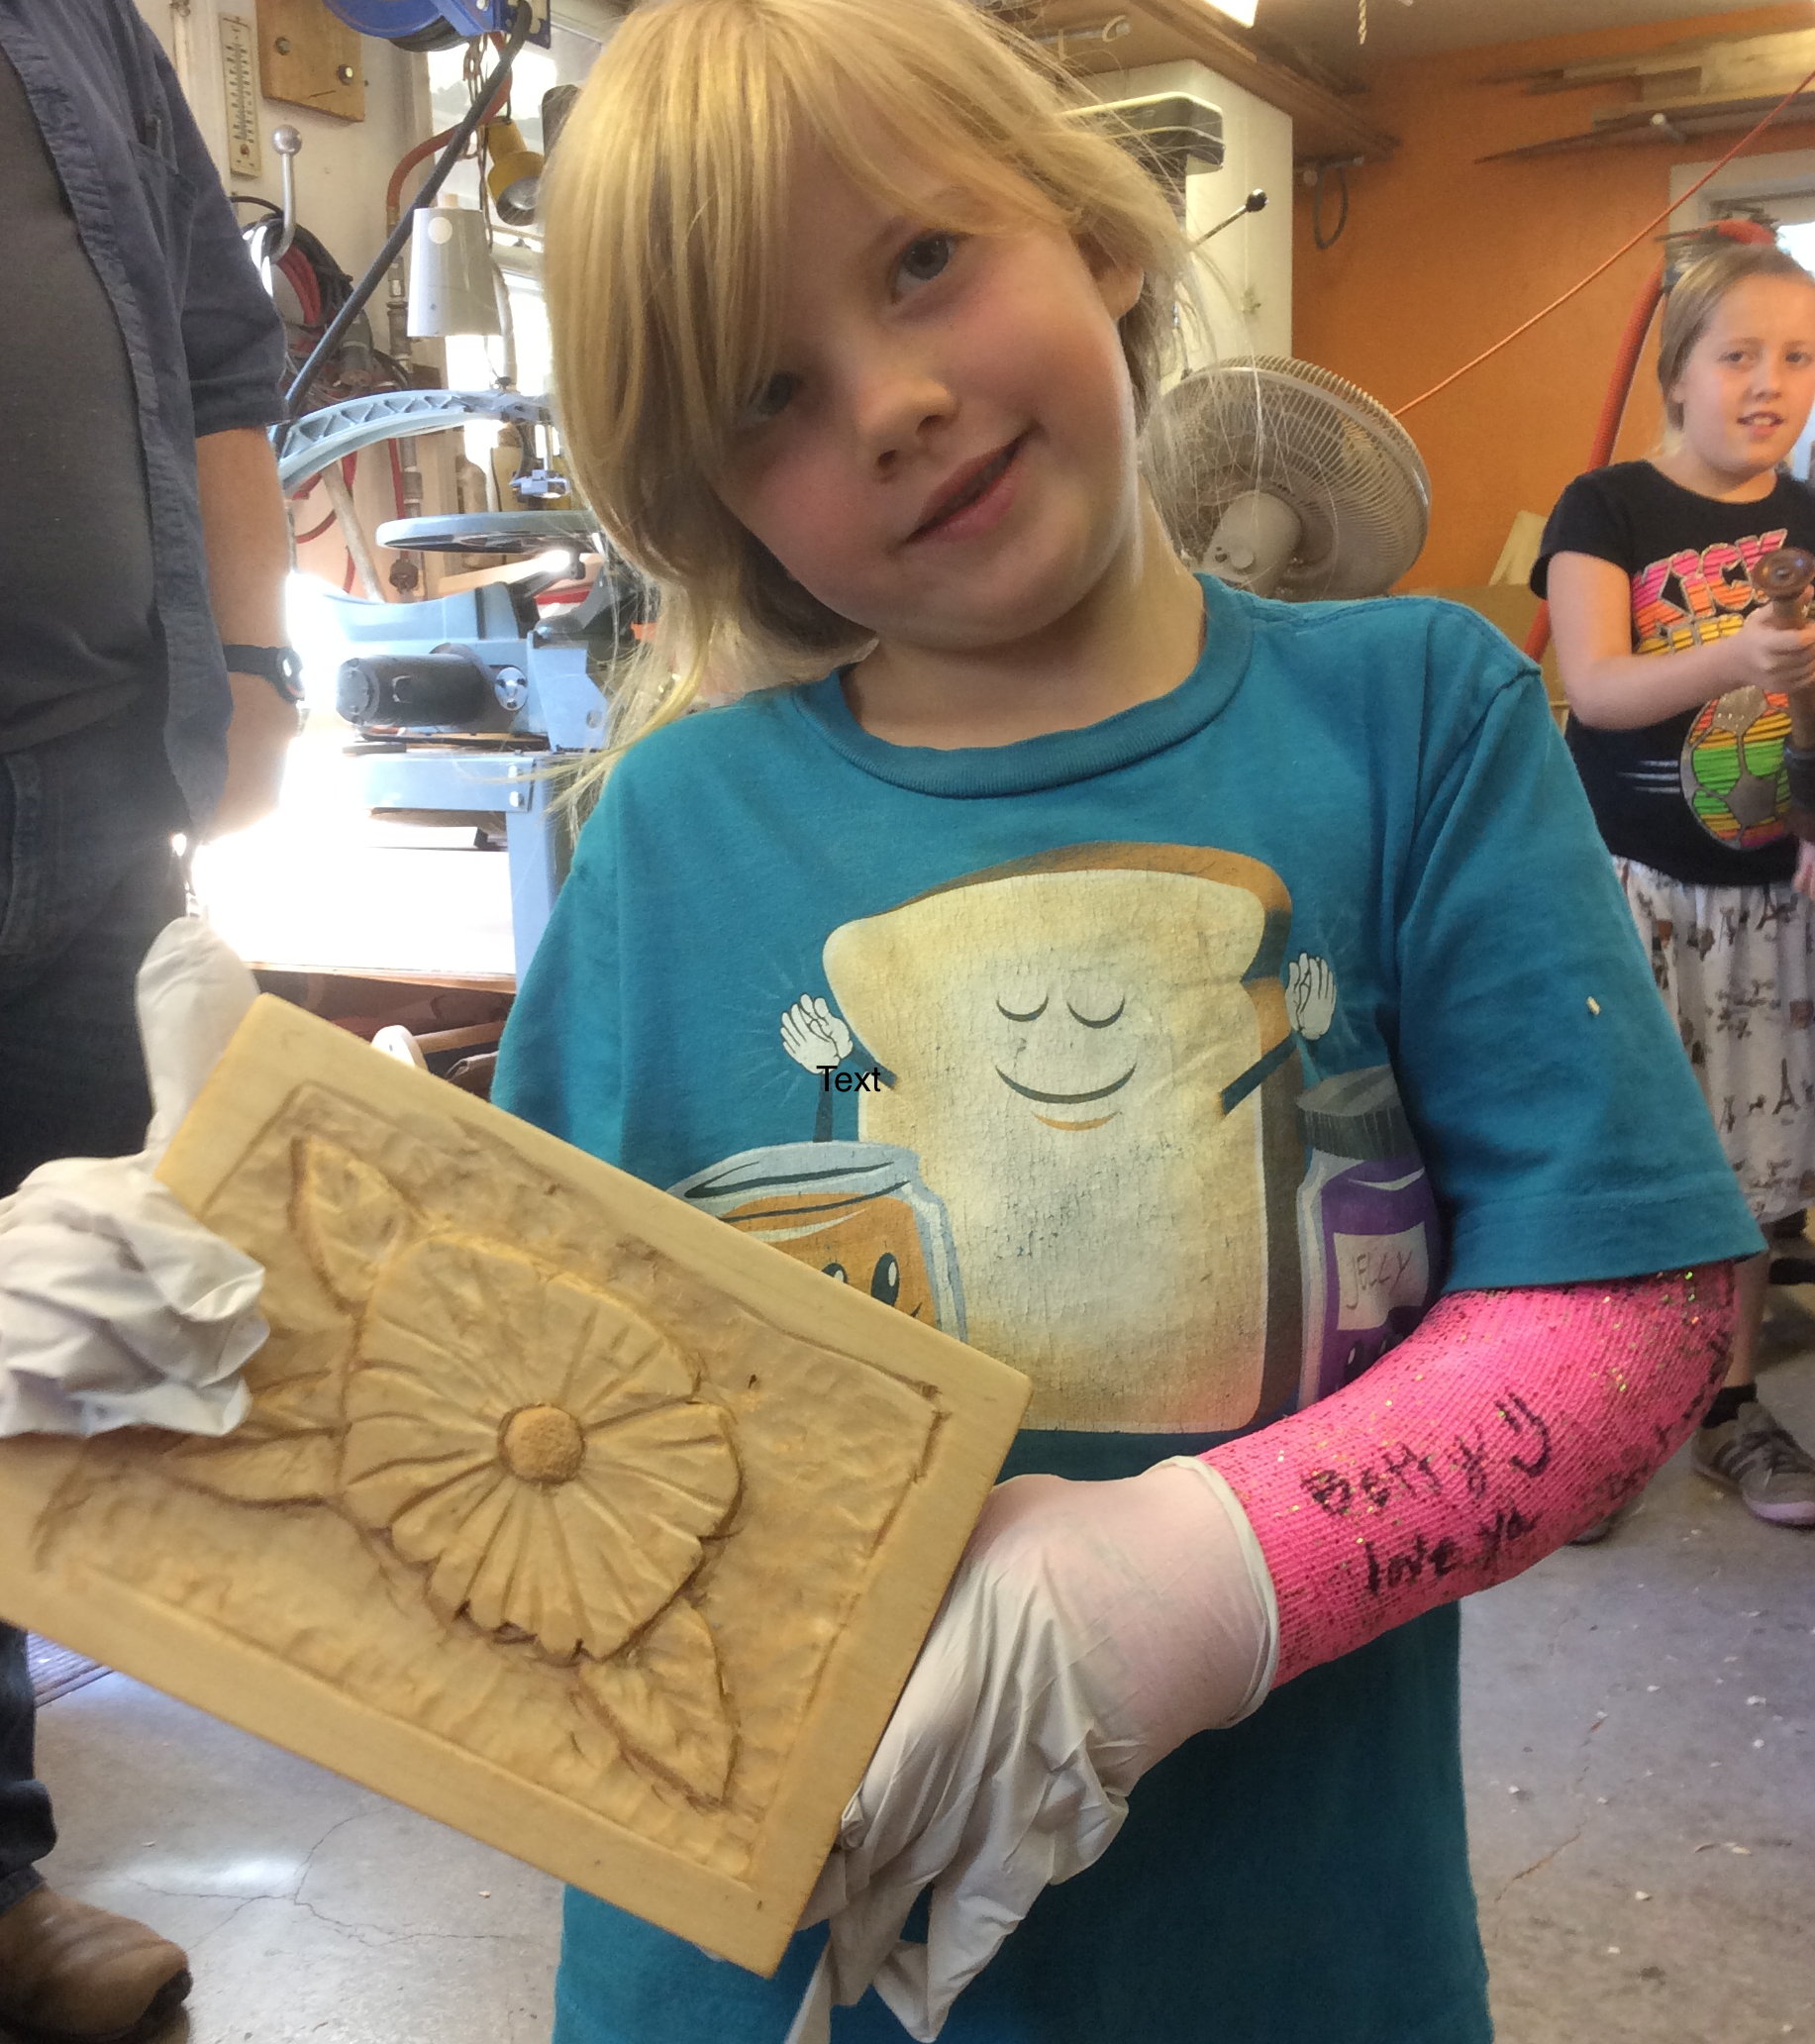 Echo's little sister, 5 and 3/4 year old Sephy, finished her flower. She didn't let a broken arm keep her from finishing.